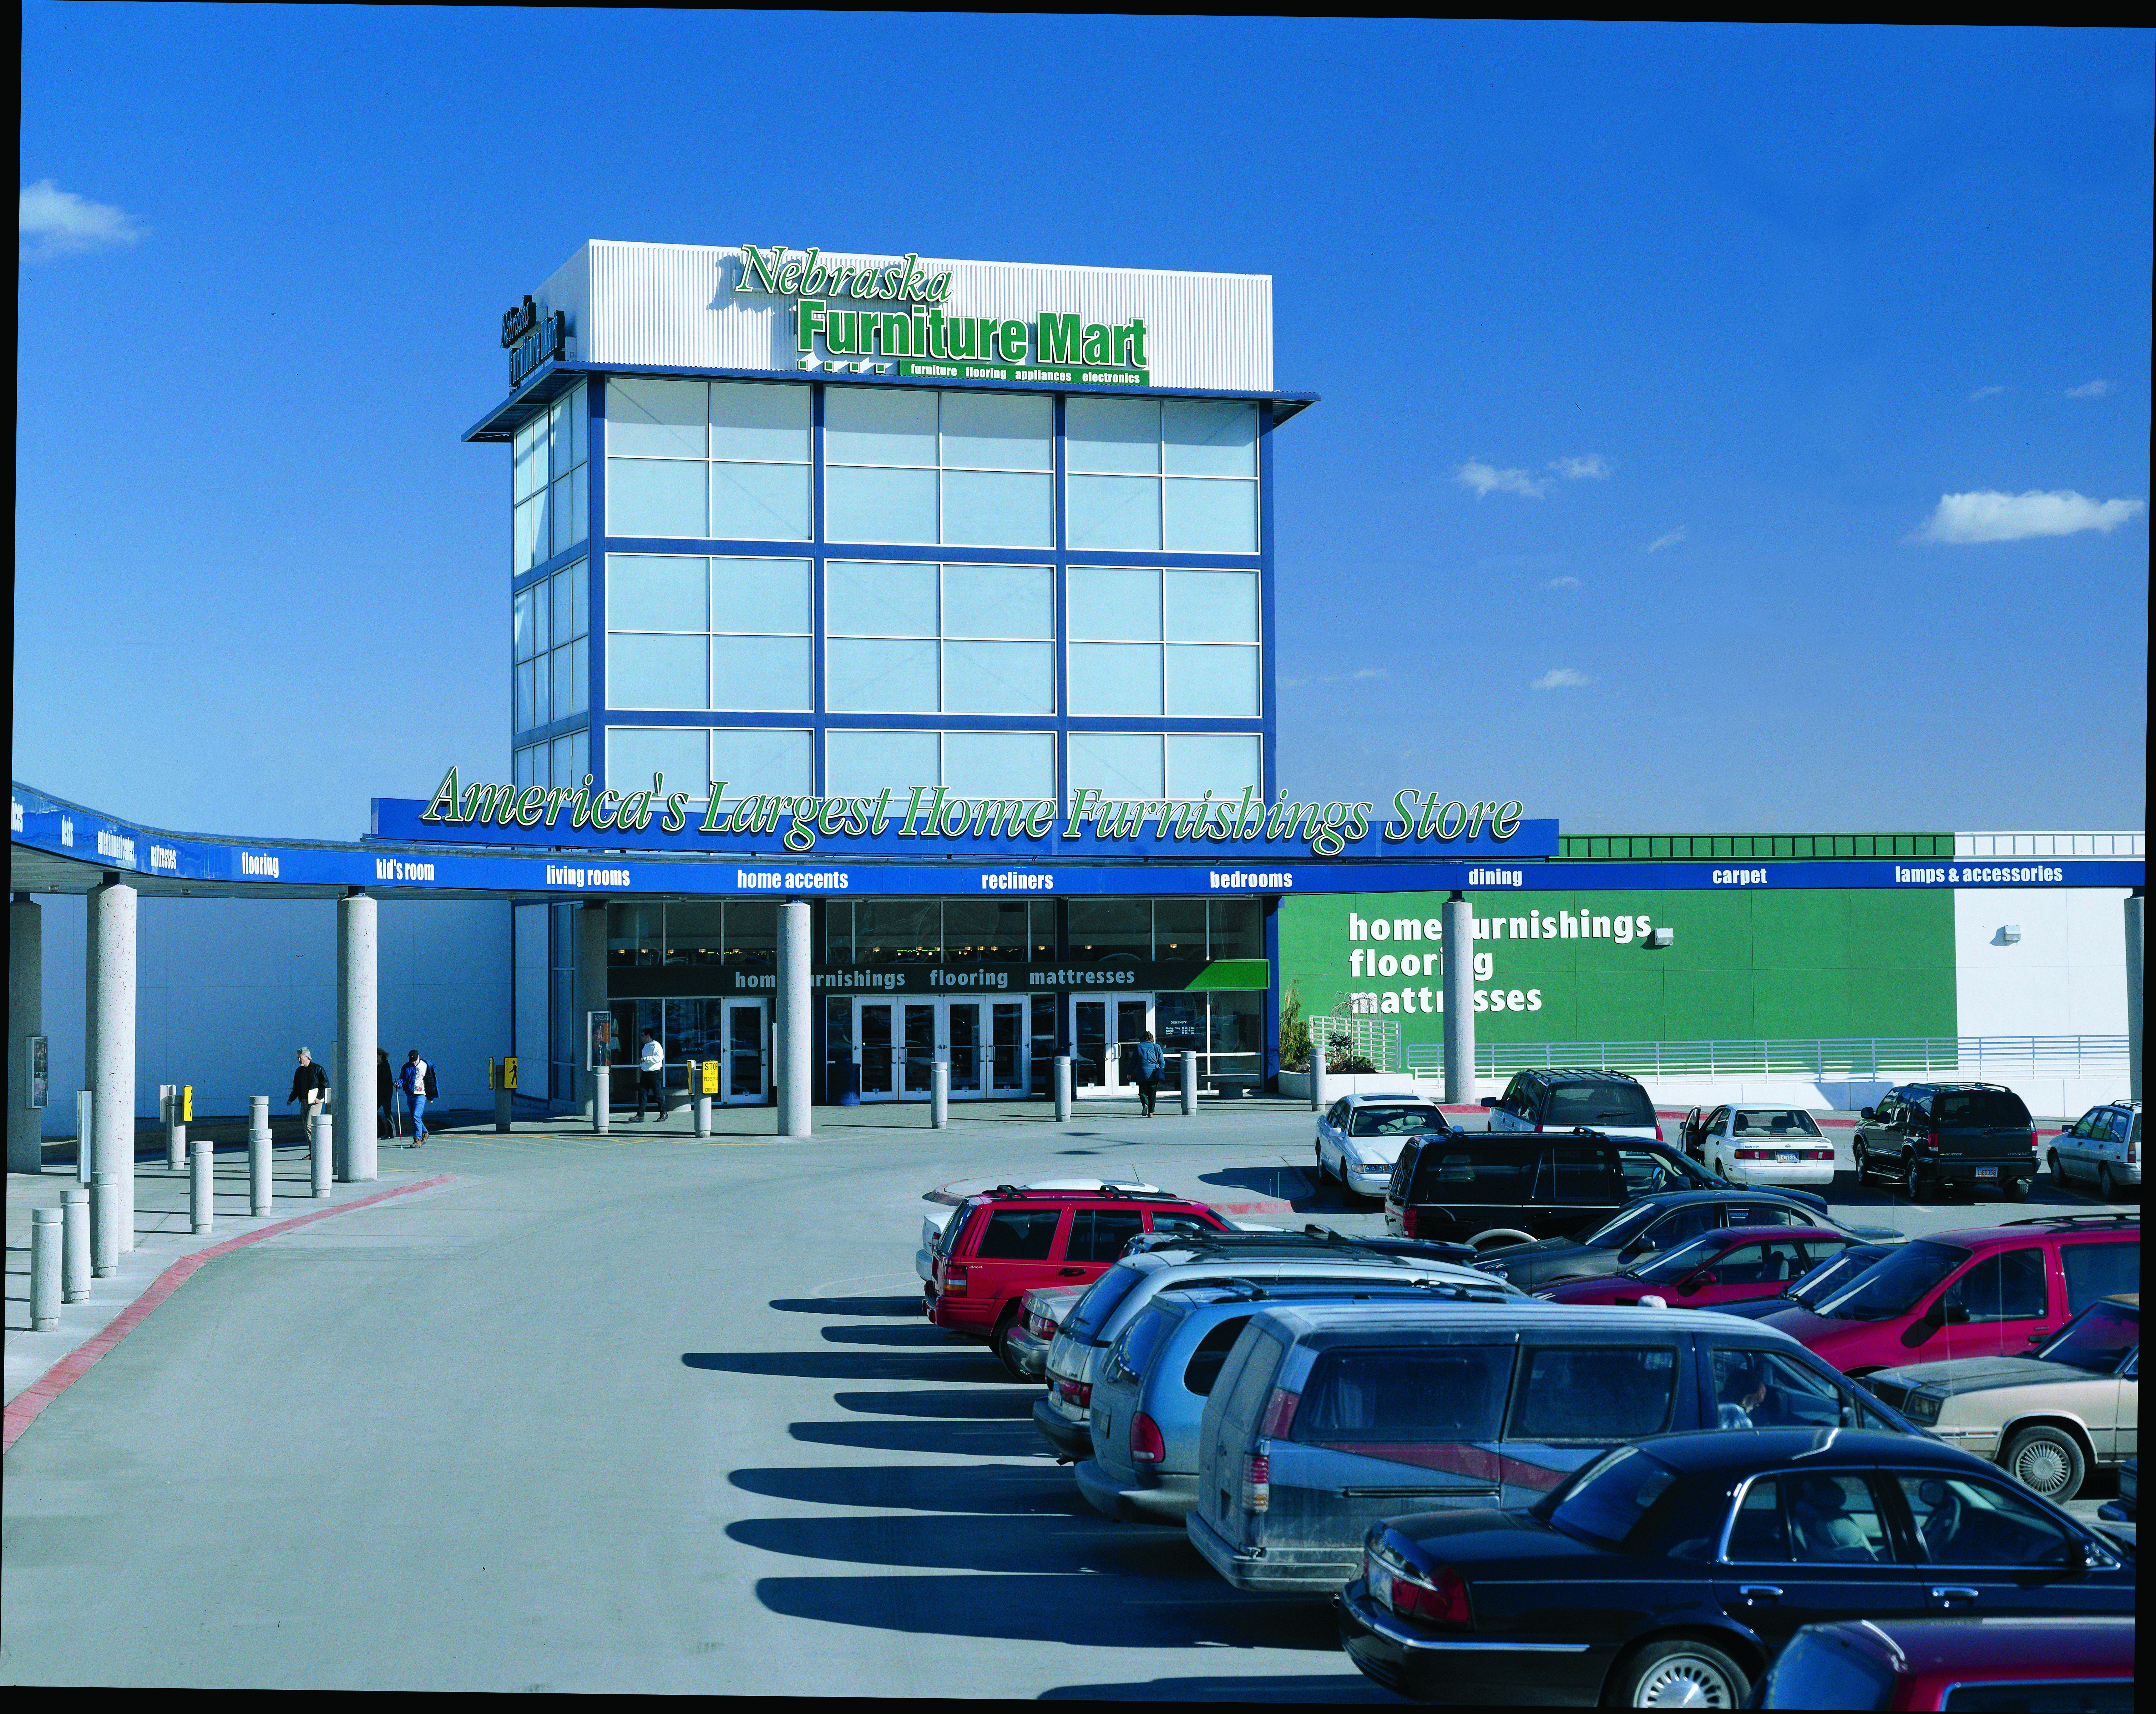 Nebraska Furniture Mart 700 S 72nd St Omaha Ne 68114 Yp Com